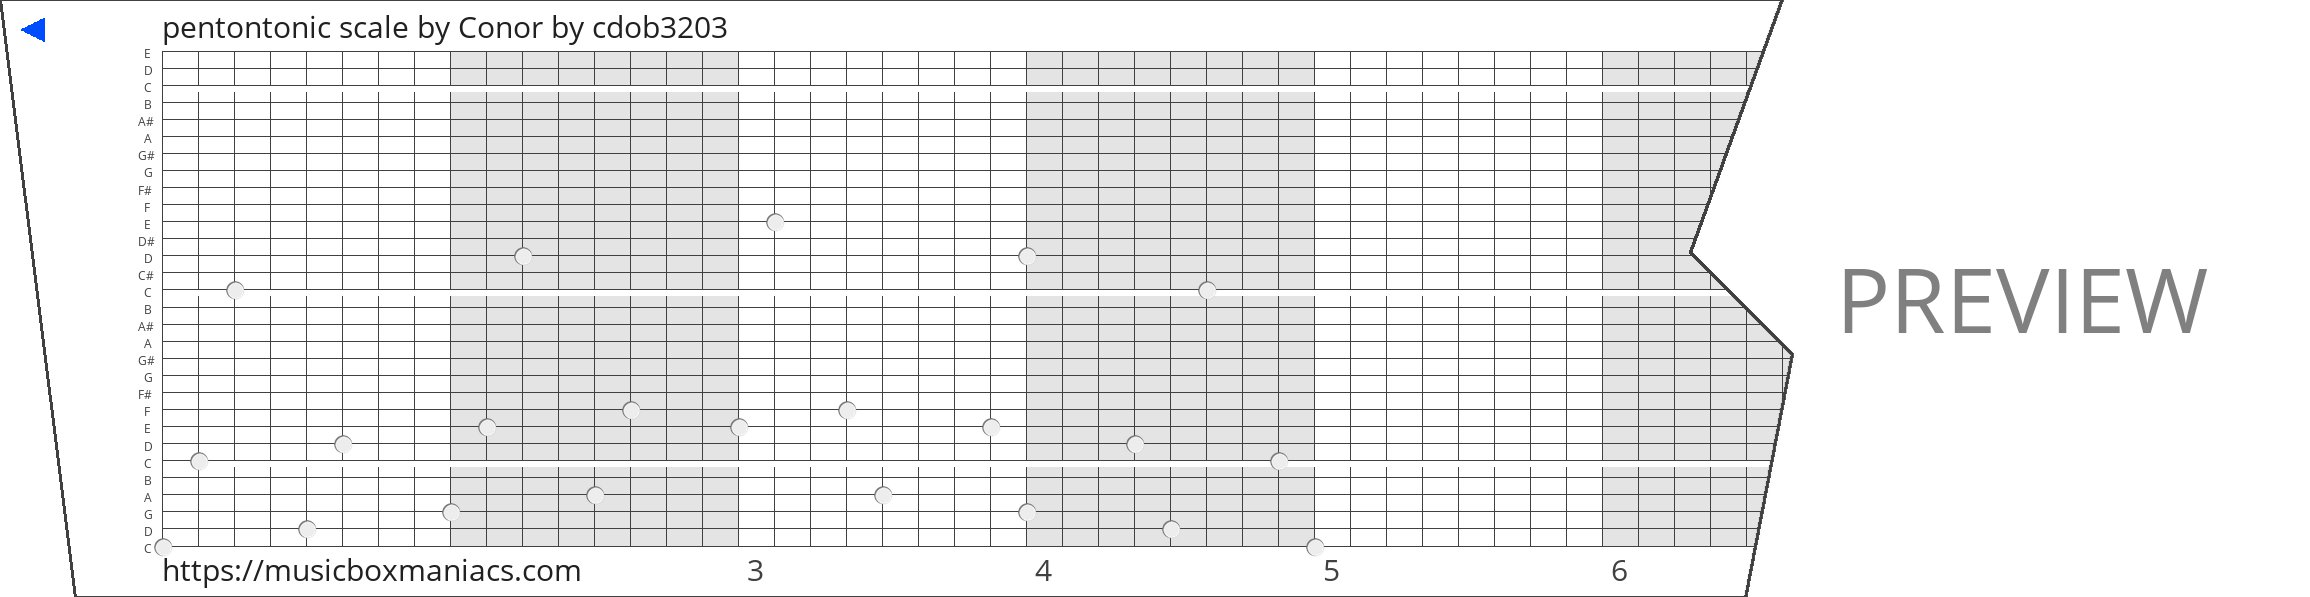 pentontonic scale by Conor 30 note music box paper strip